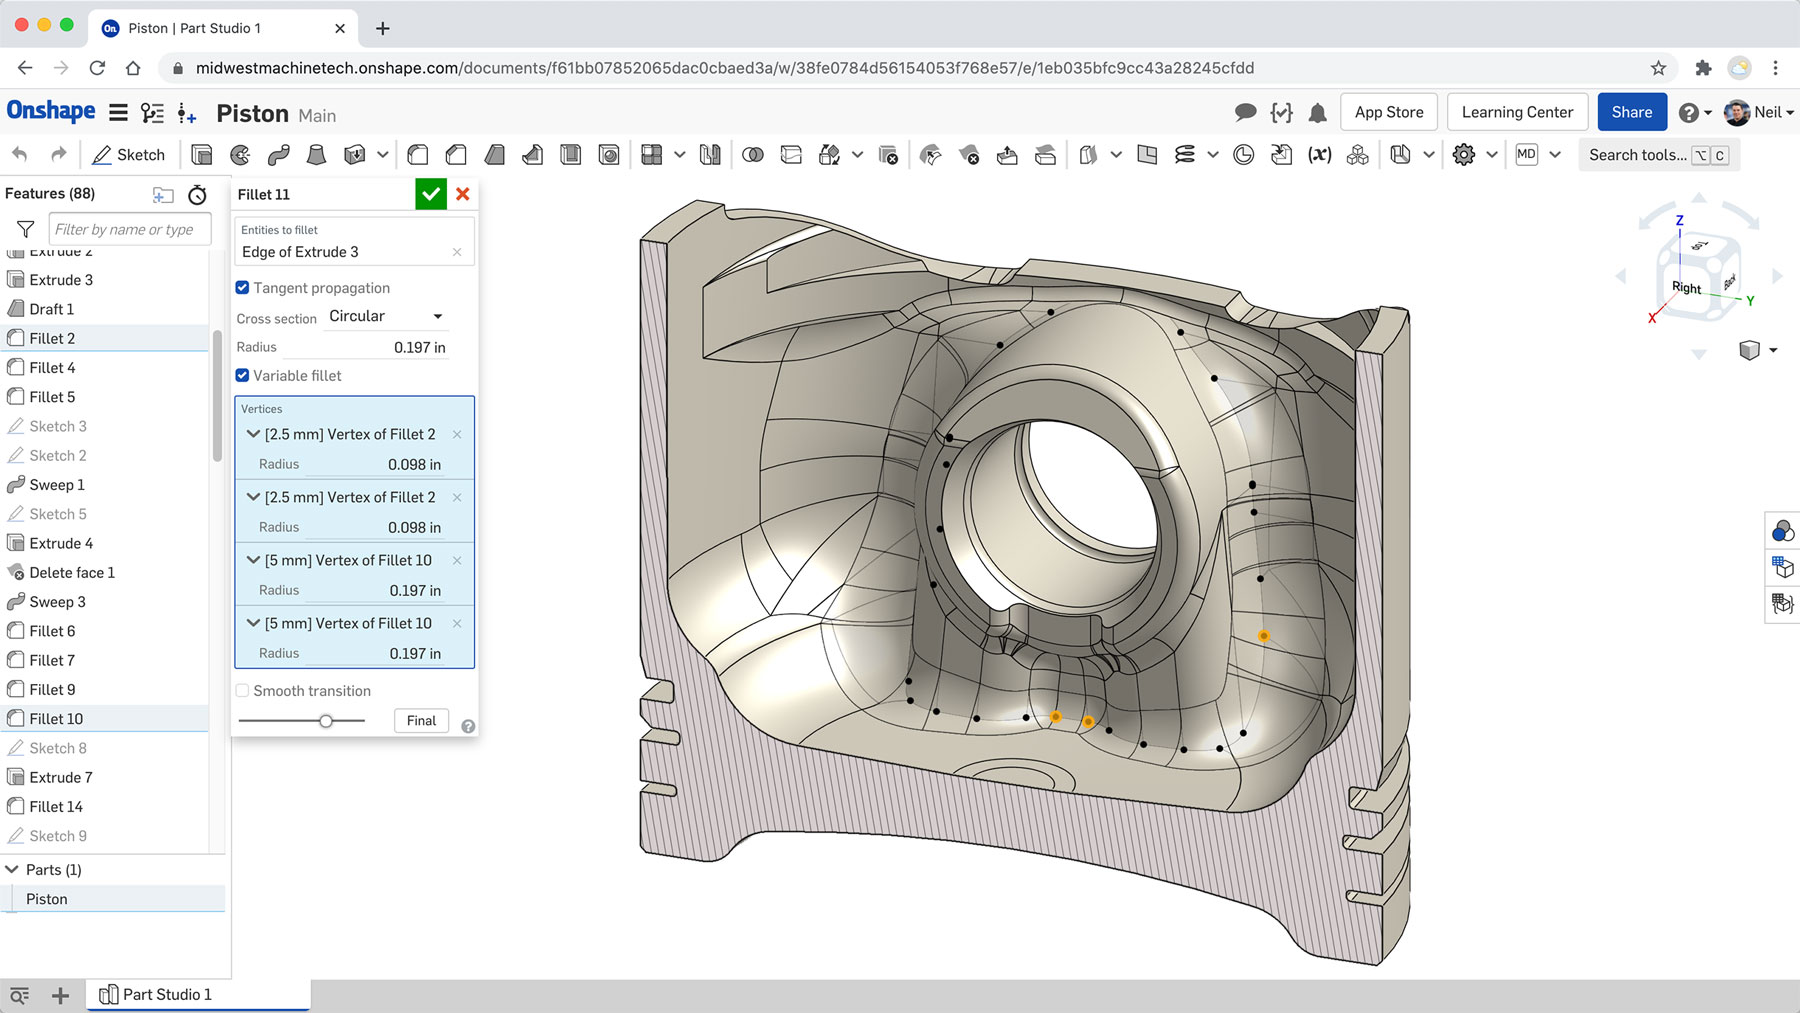 Features within Onshape